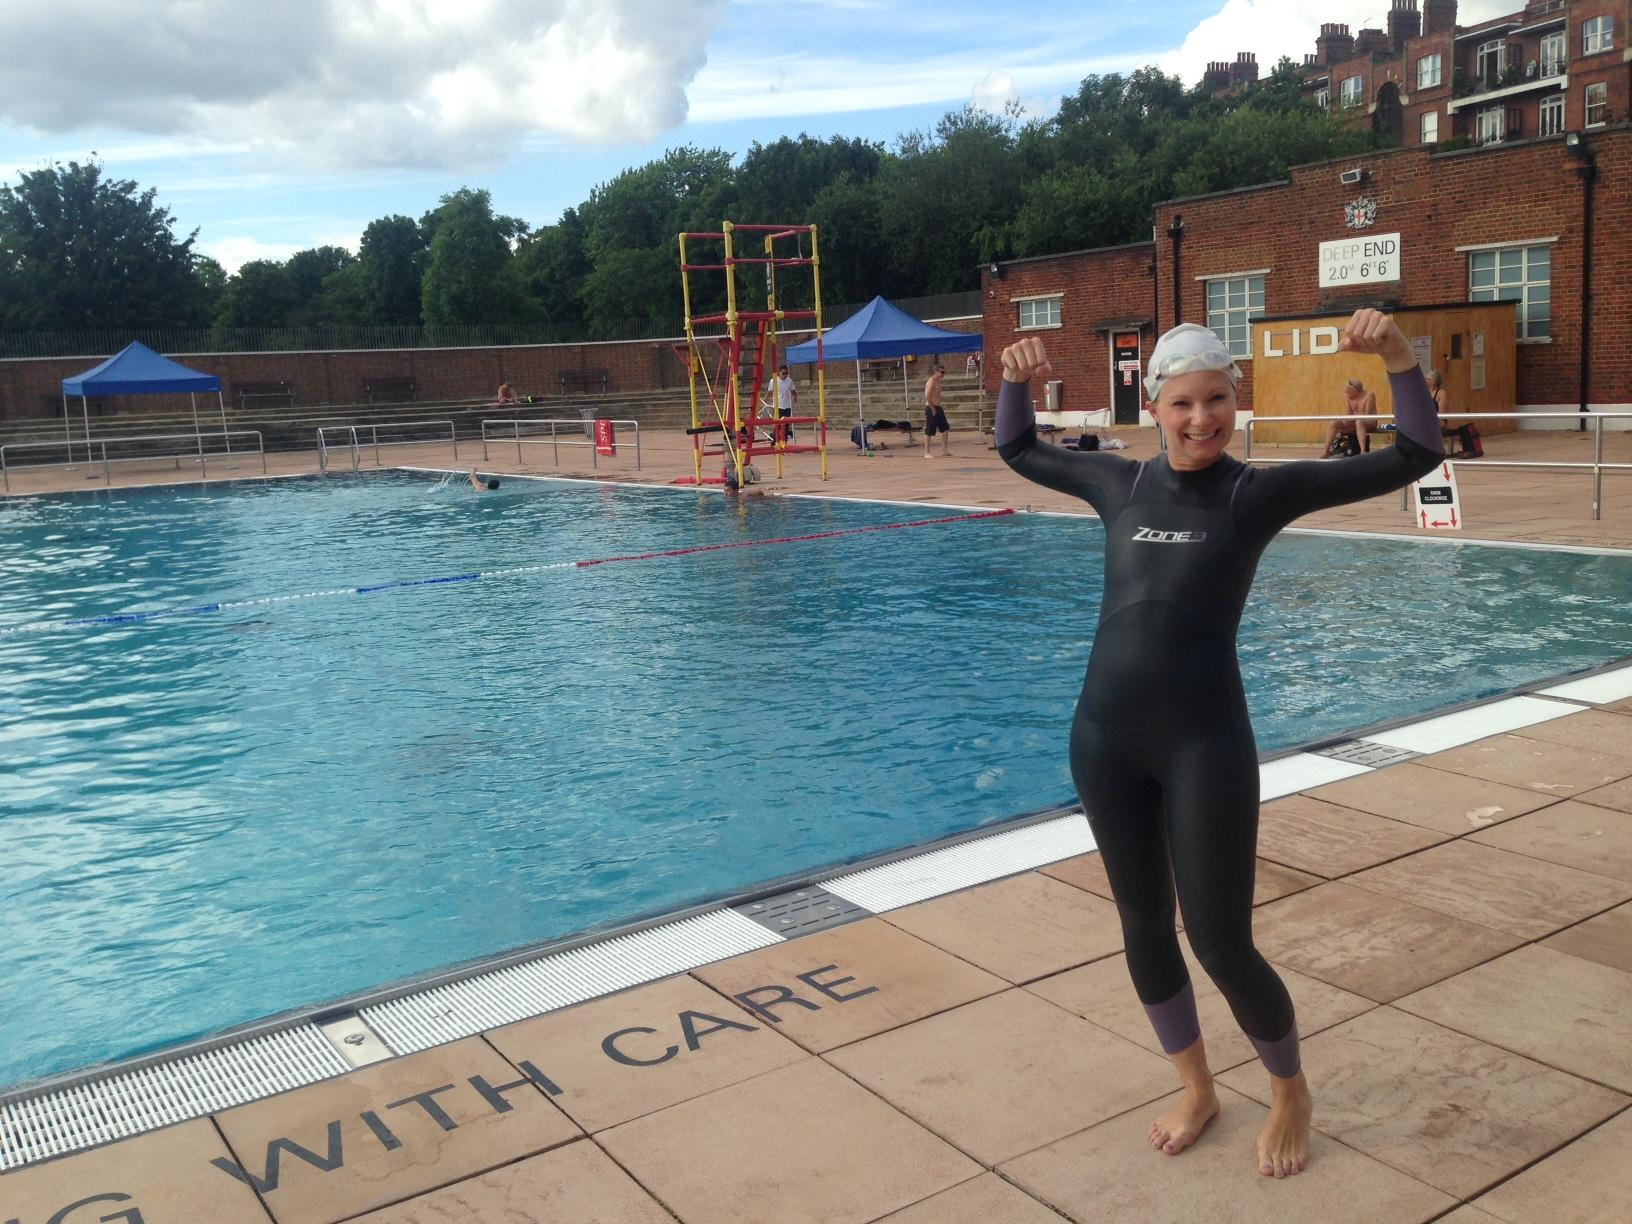 Practicing in my wetsuit at the Hamstead Heath Lido, an outdoor 60m swimming pool